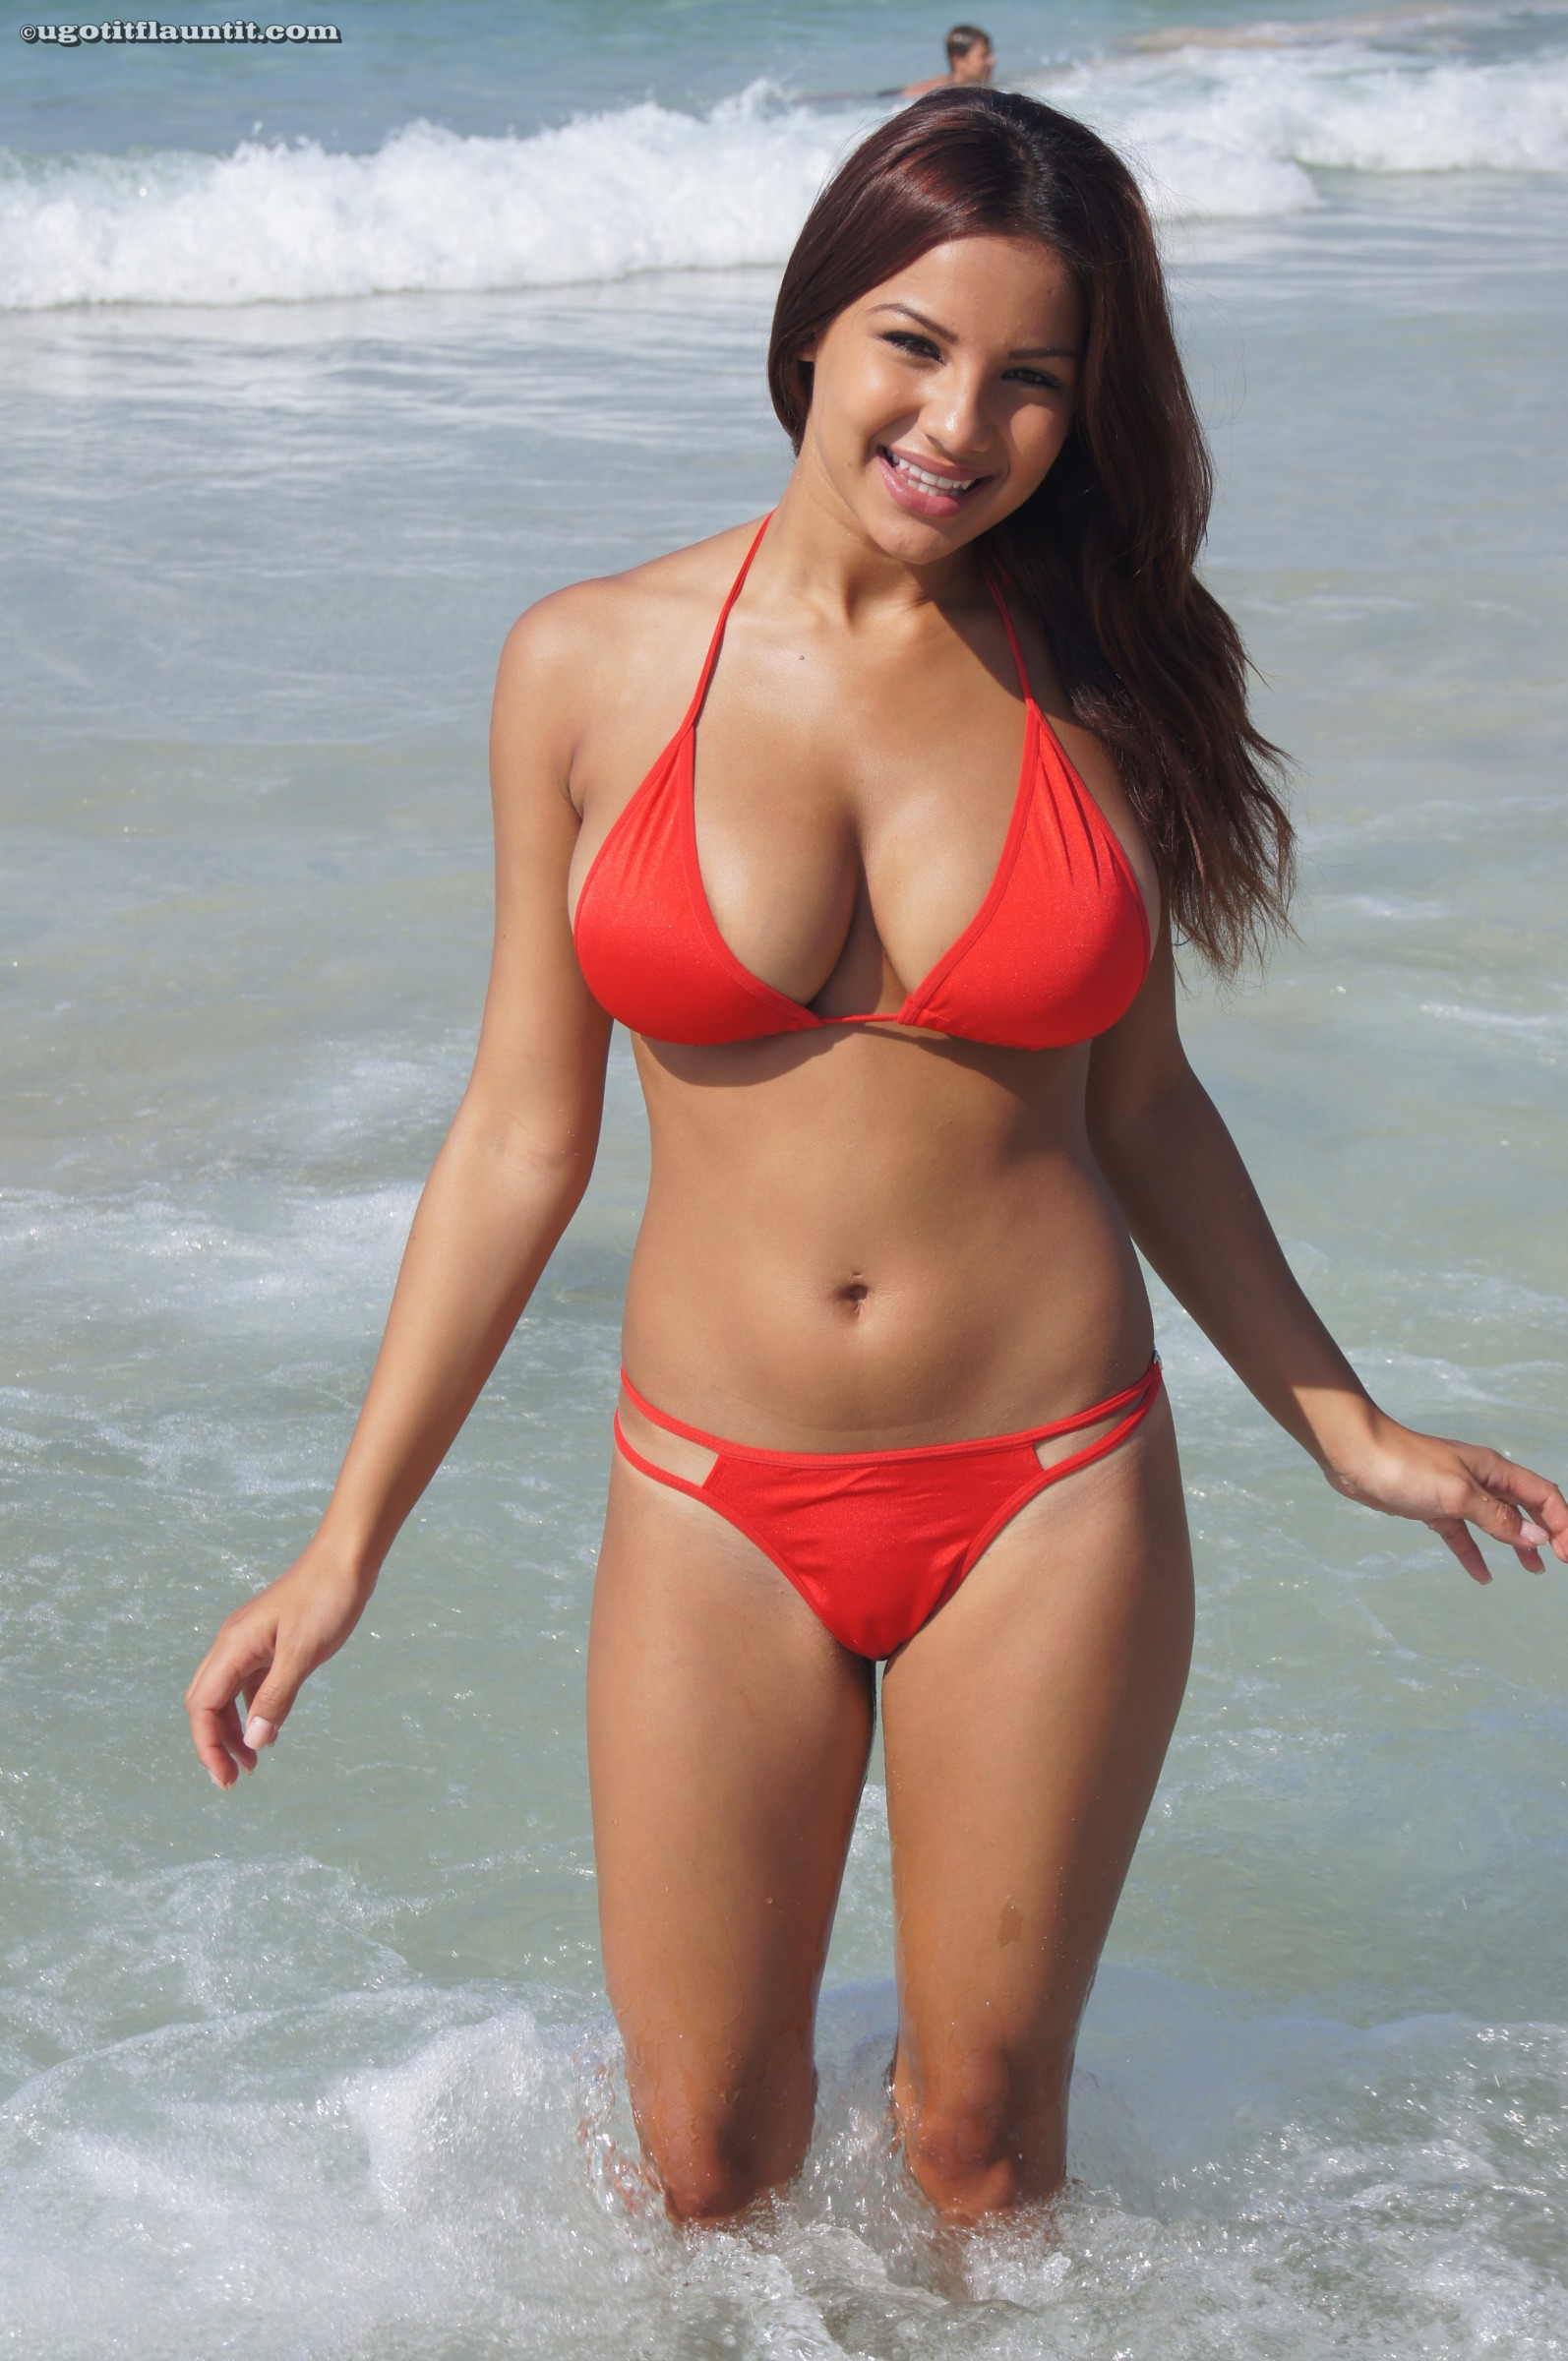 Be vibrant in Red Swimsuits. Find Women's Red Swimsuits, Kids Red Swimsuits and more at Macy's.